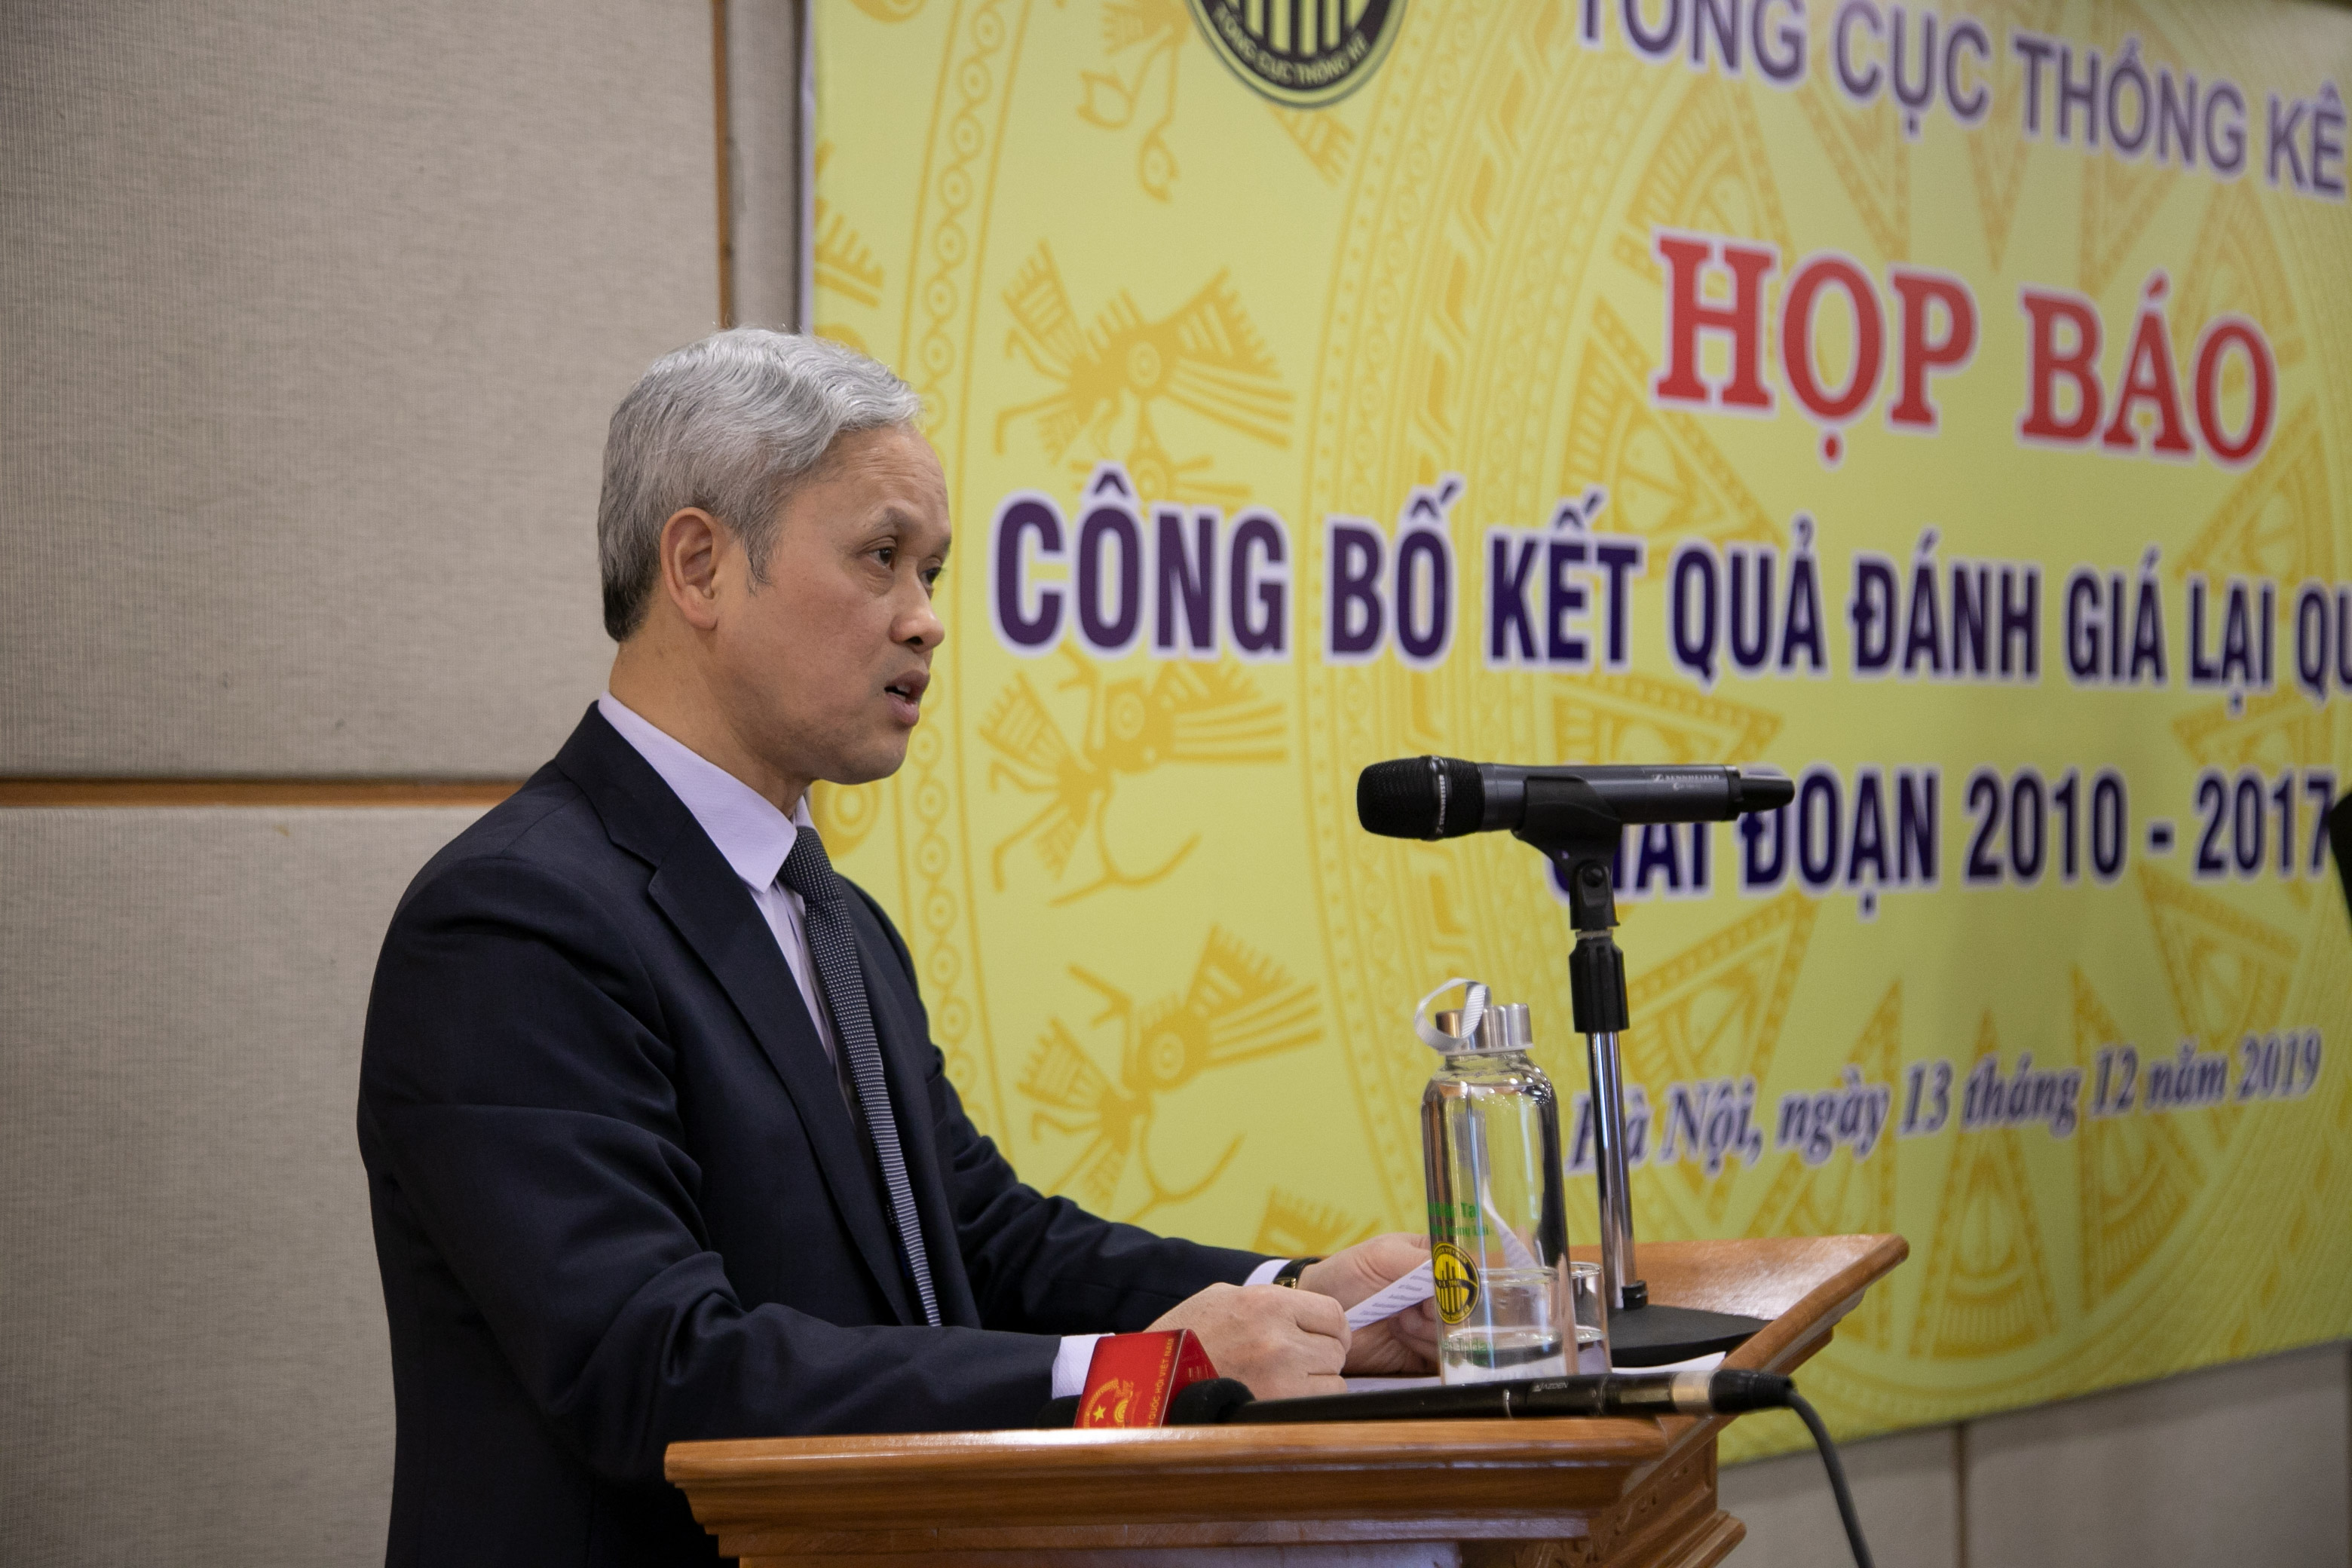 Viet Nam Launches Revised GDP